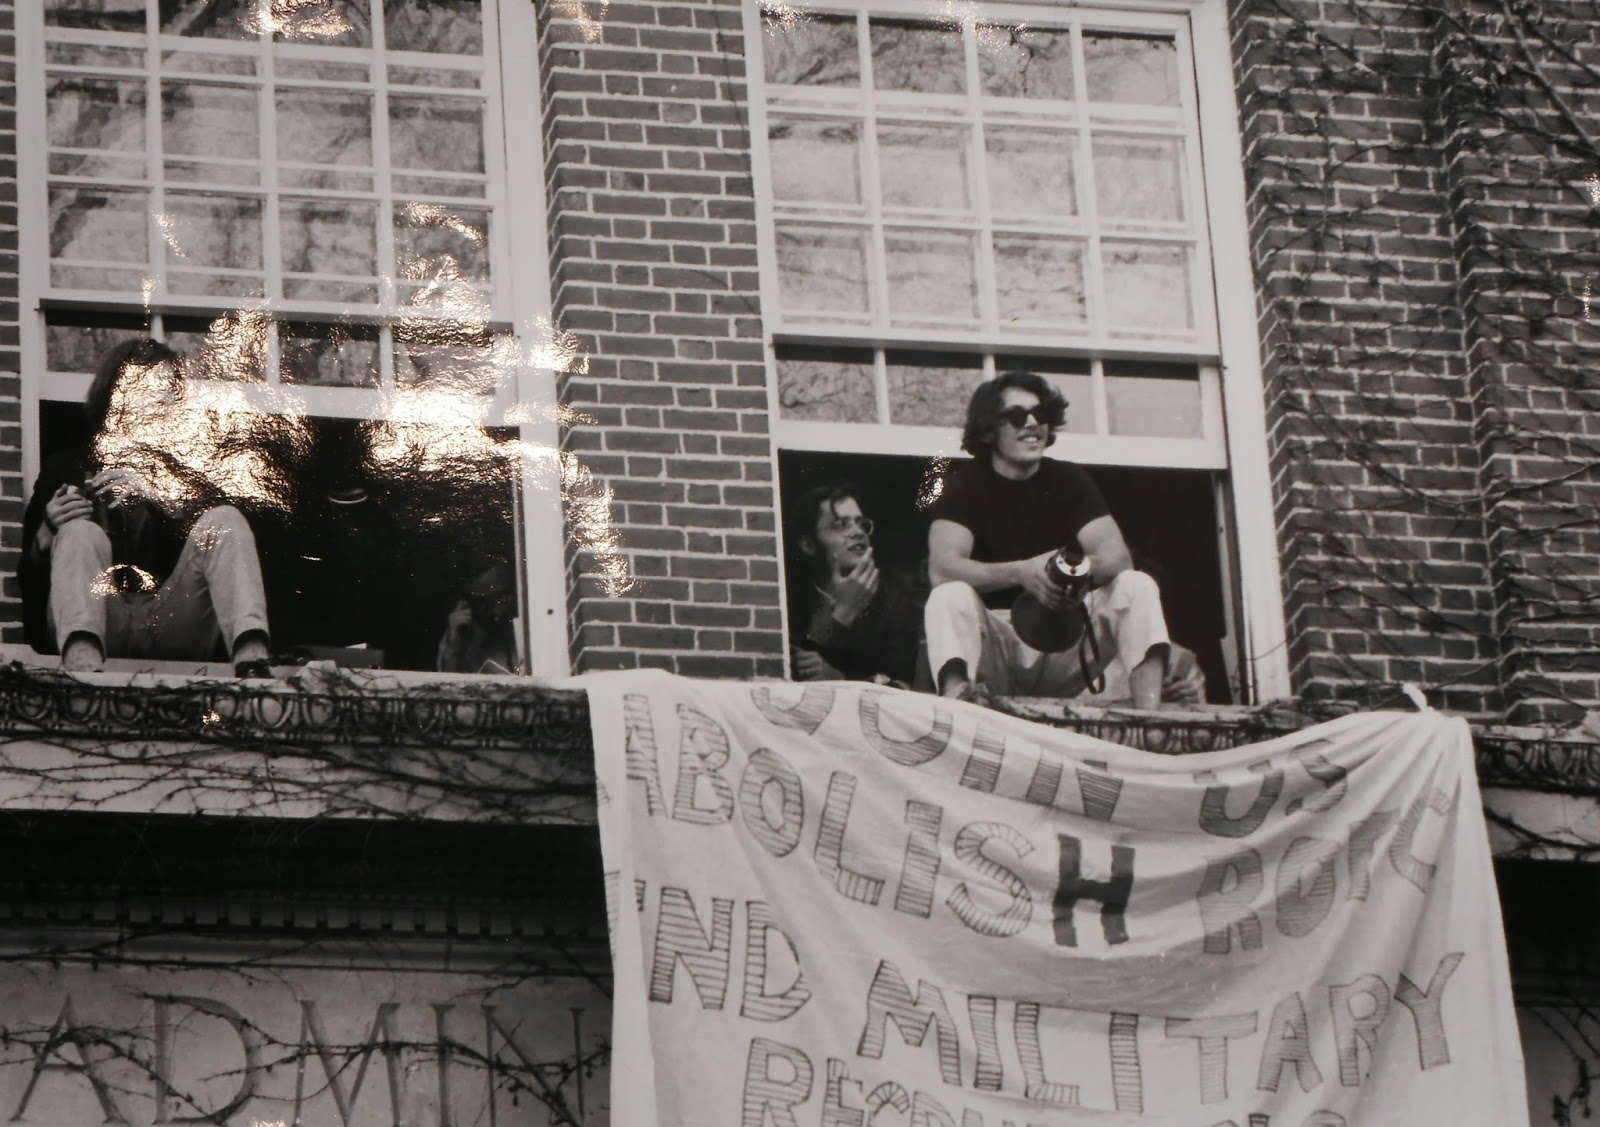 A black and white photograph of students perched in the open windows of an administrative building, out of which hangs a hand-made banner.